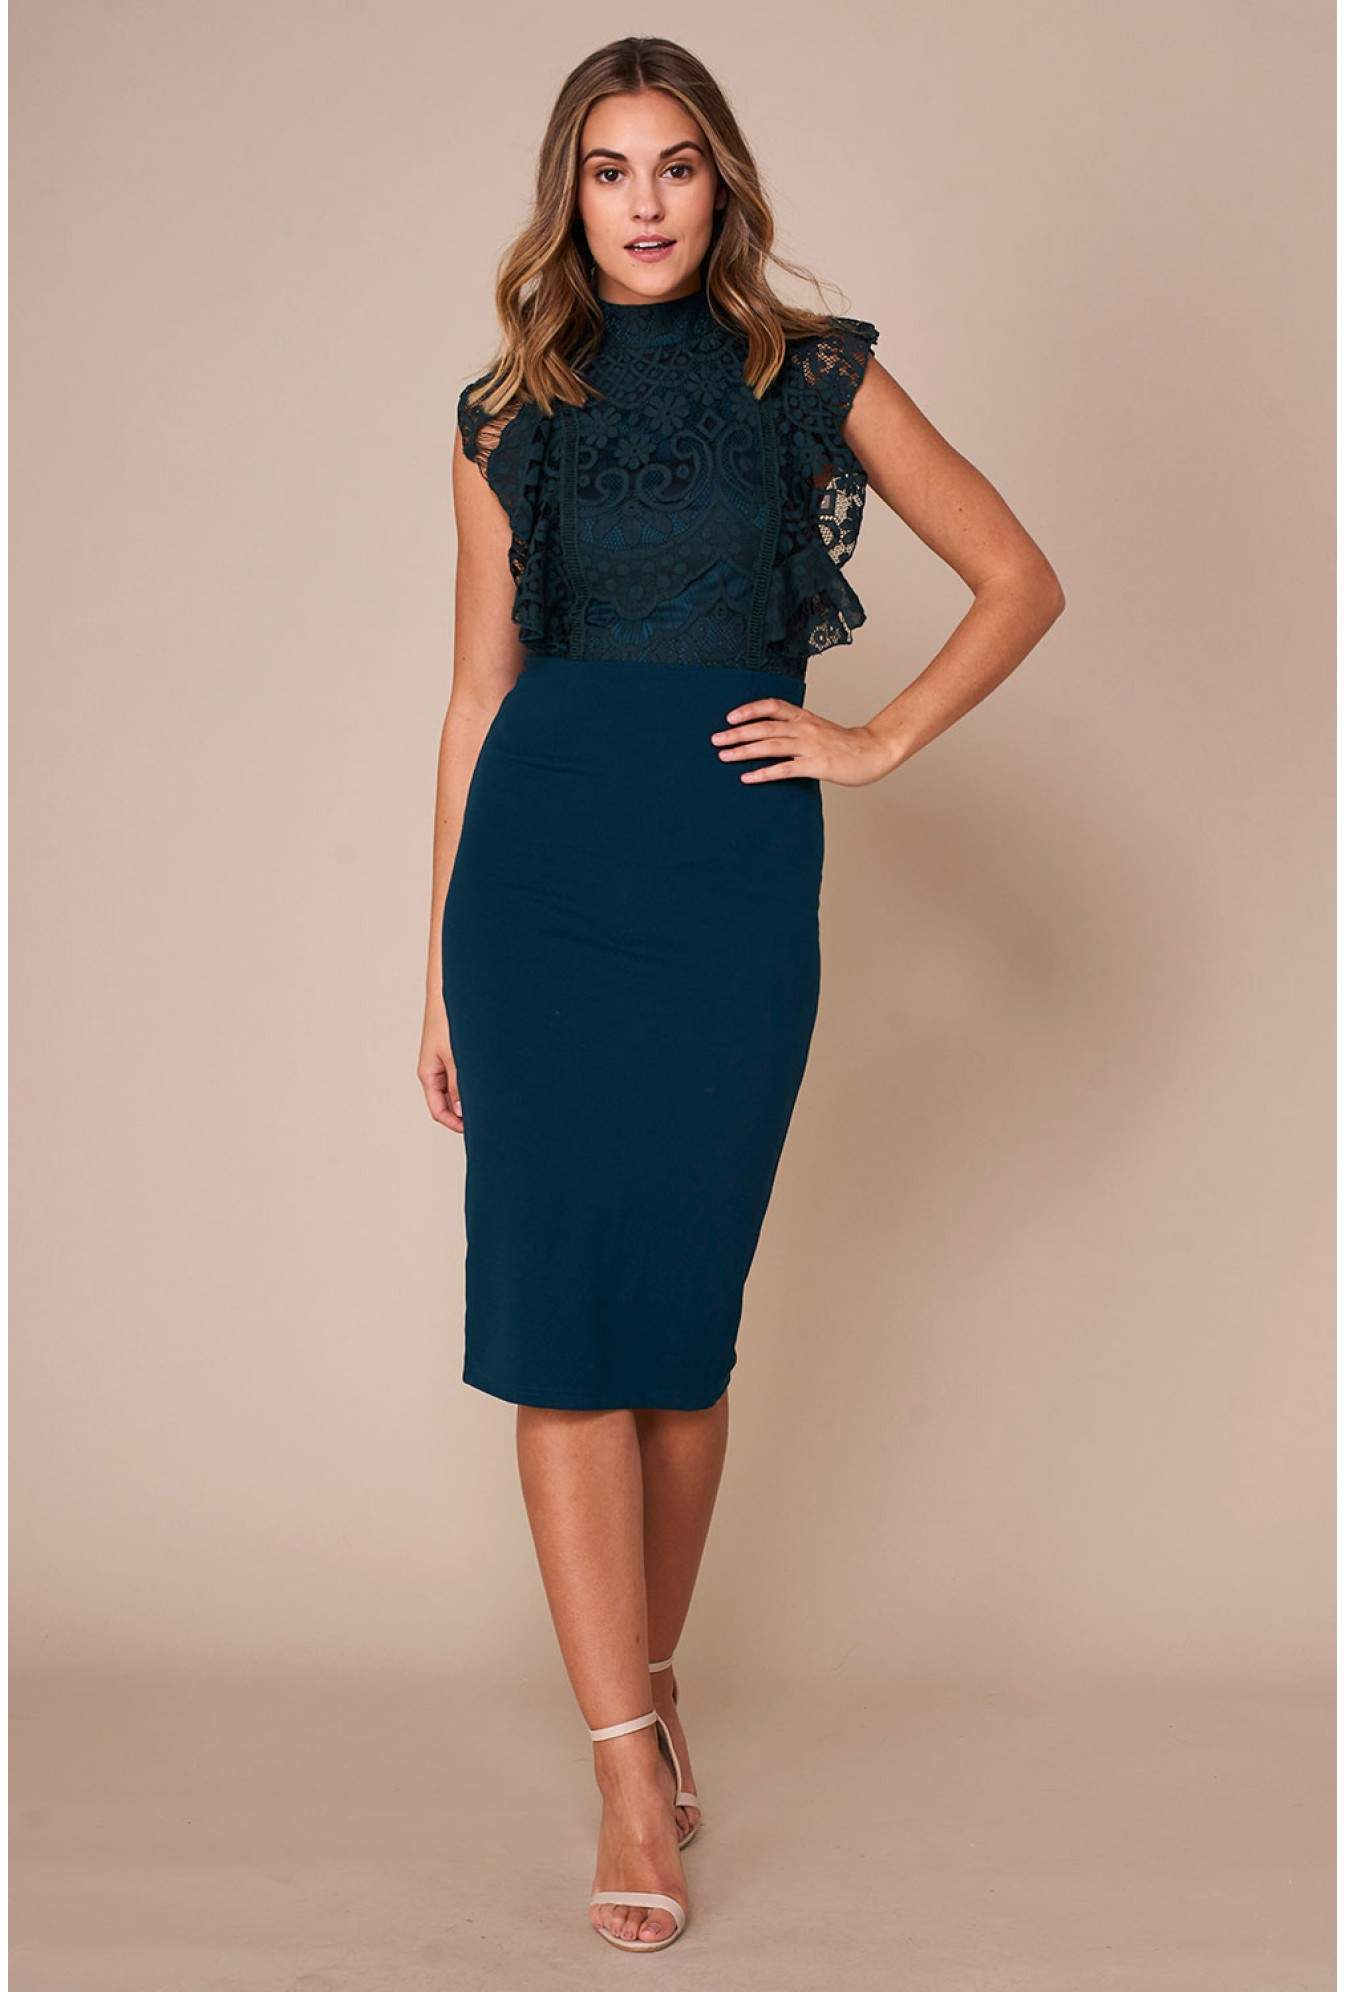 c11ce79d38caf Girl in Mind Kia High Neck Lace Pencil Dress in Emerald Green ...